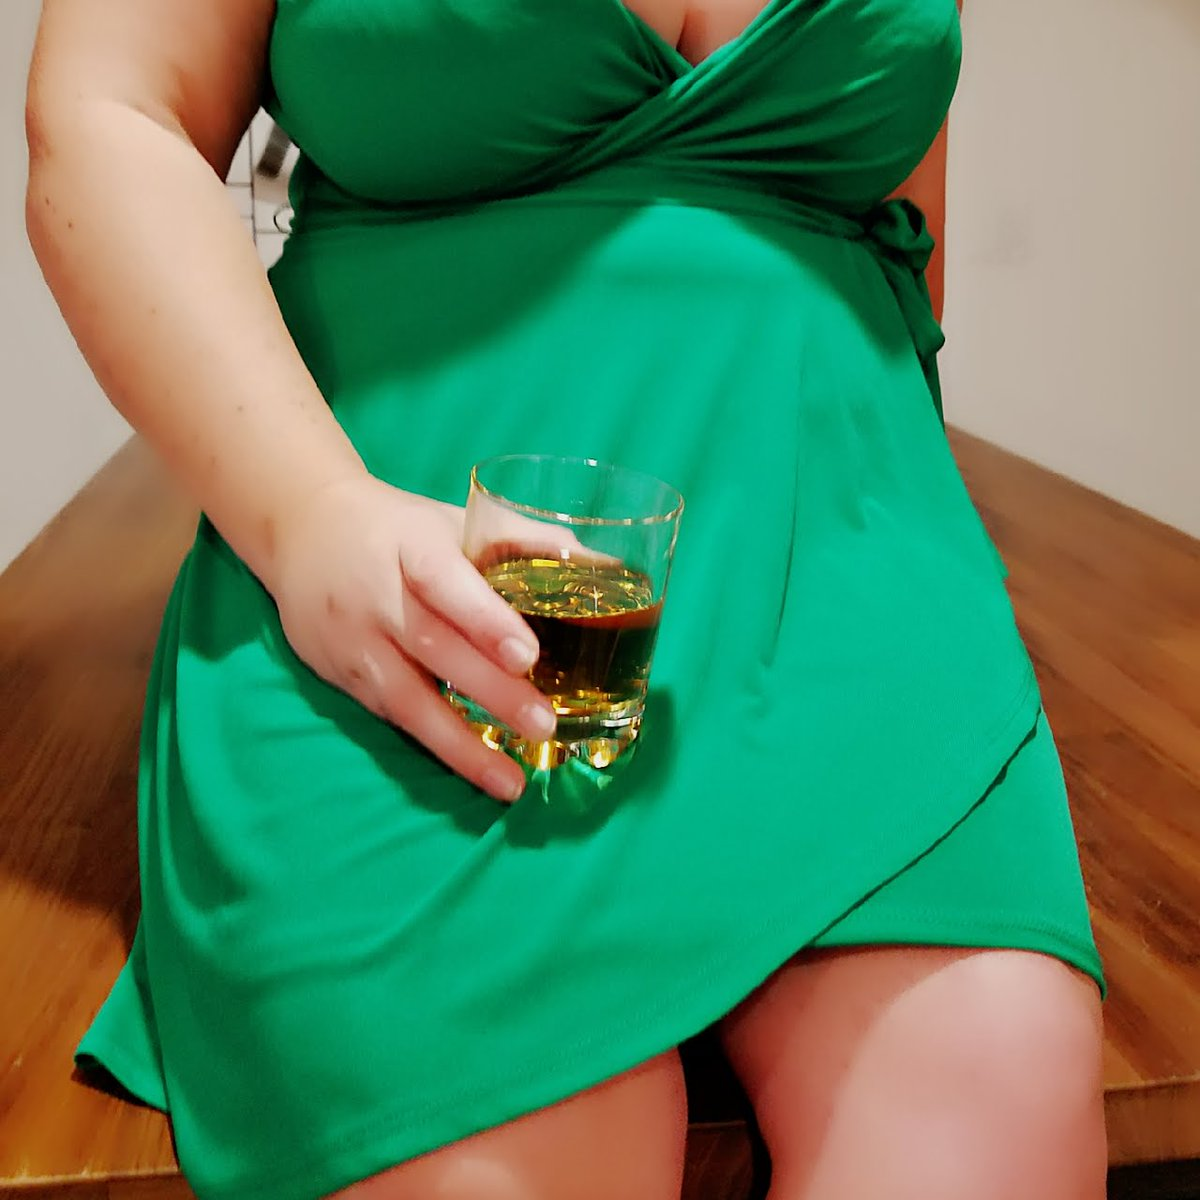 Have I mentioned how much I love dinner dates? So much fun and dessert is even better. Available to come to you in WNC, Charlotte, & Upstate SC Prebooking now. Please RT Booking: leigha704.ch Richmond 11/7 - 11/9* Raleigh 11/9 - 11/11 Charlotte 11/22 - 11/23*